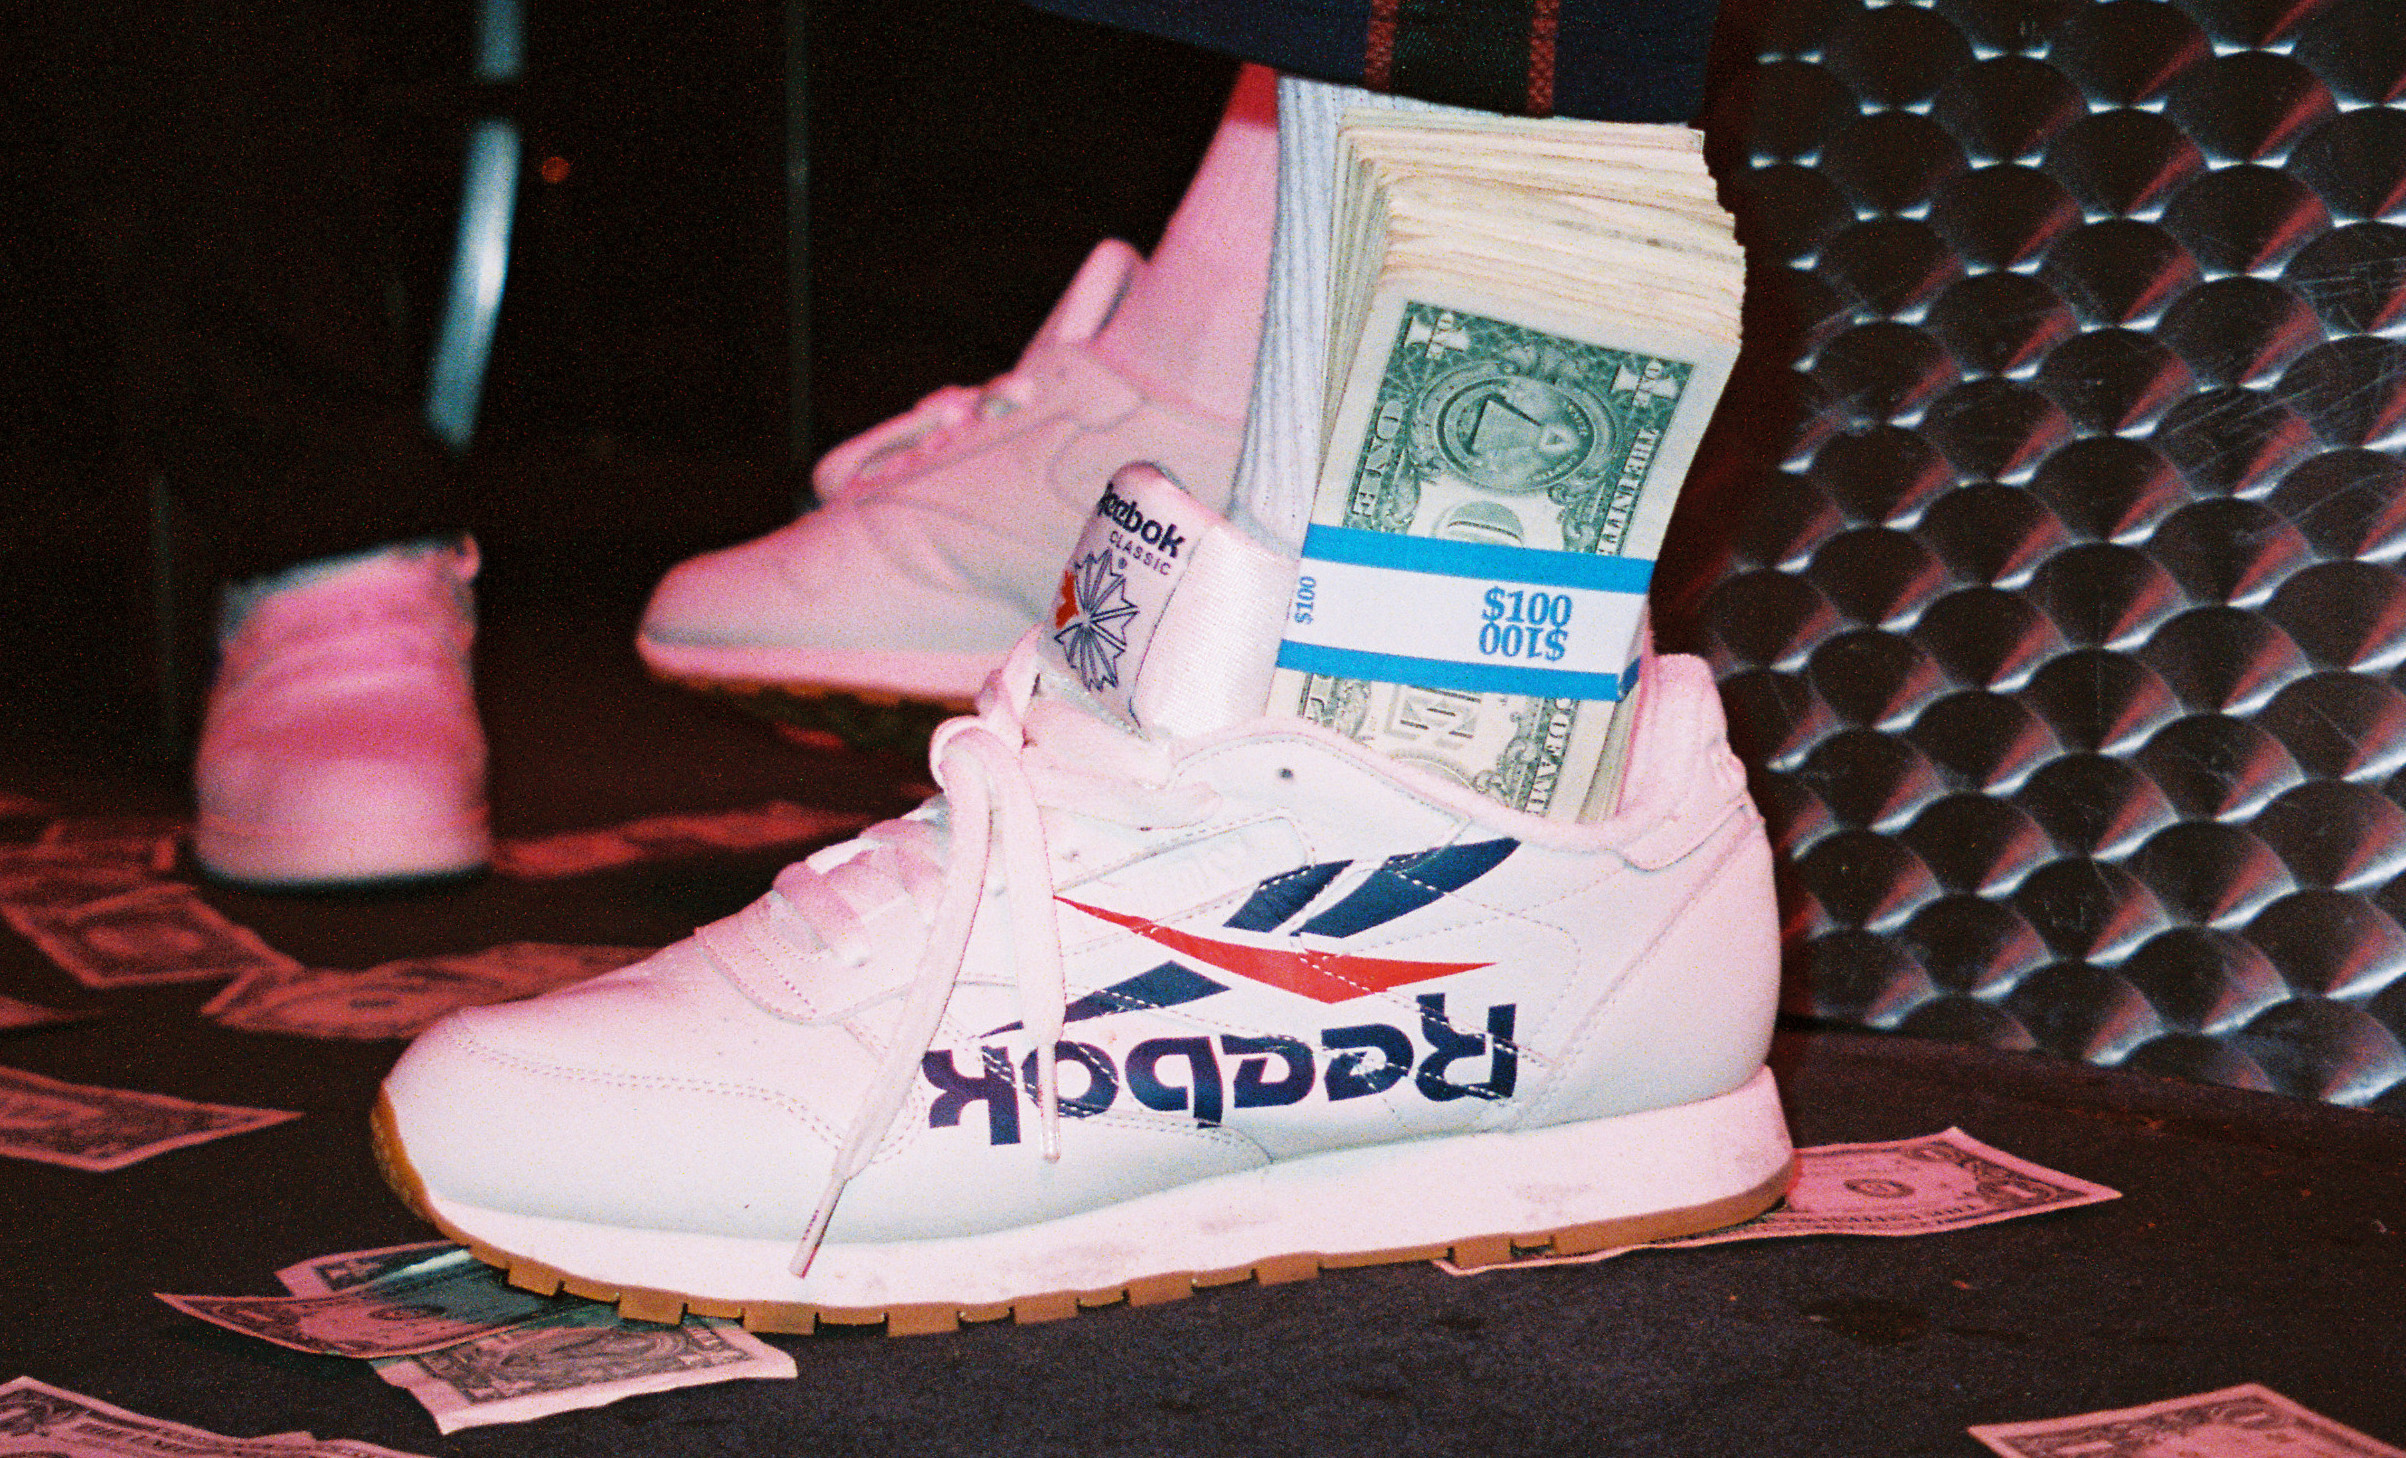 b6b87c60 Reebok '3:AM Atlanta' Collection Release Date | Sole Collector